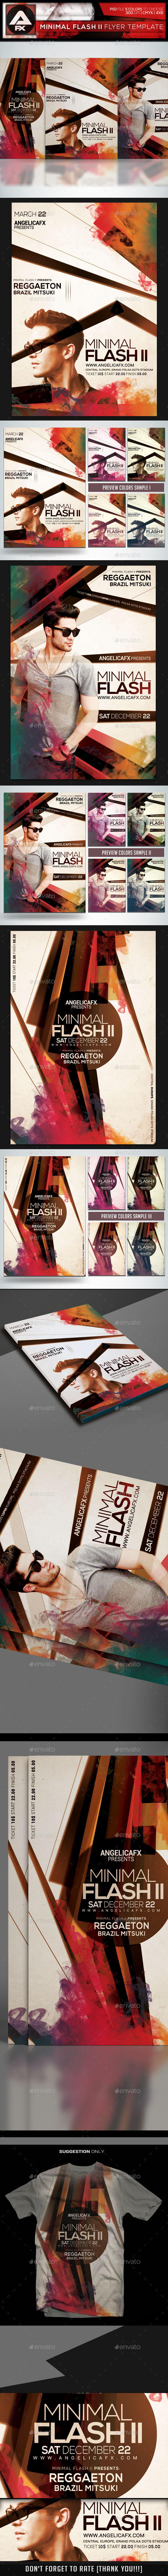 Minimal Flash II Flyer Template